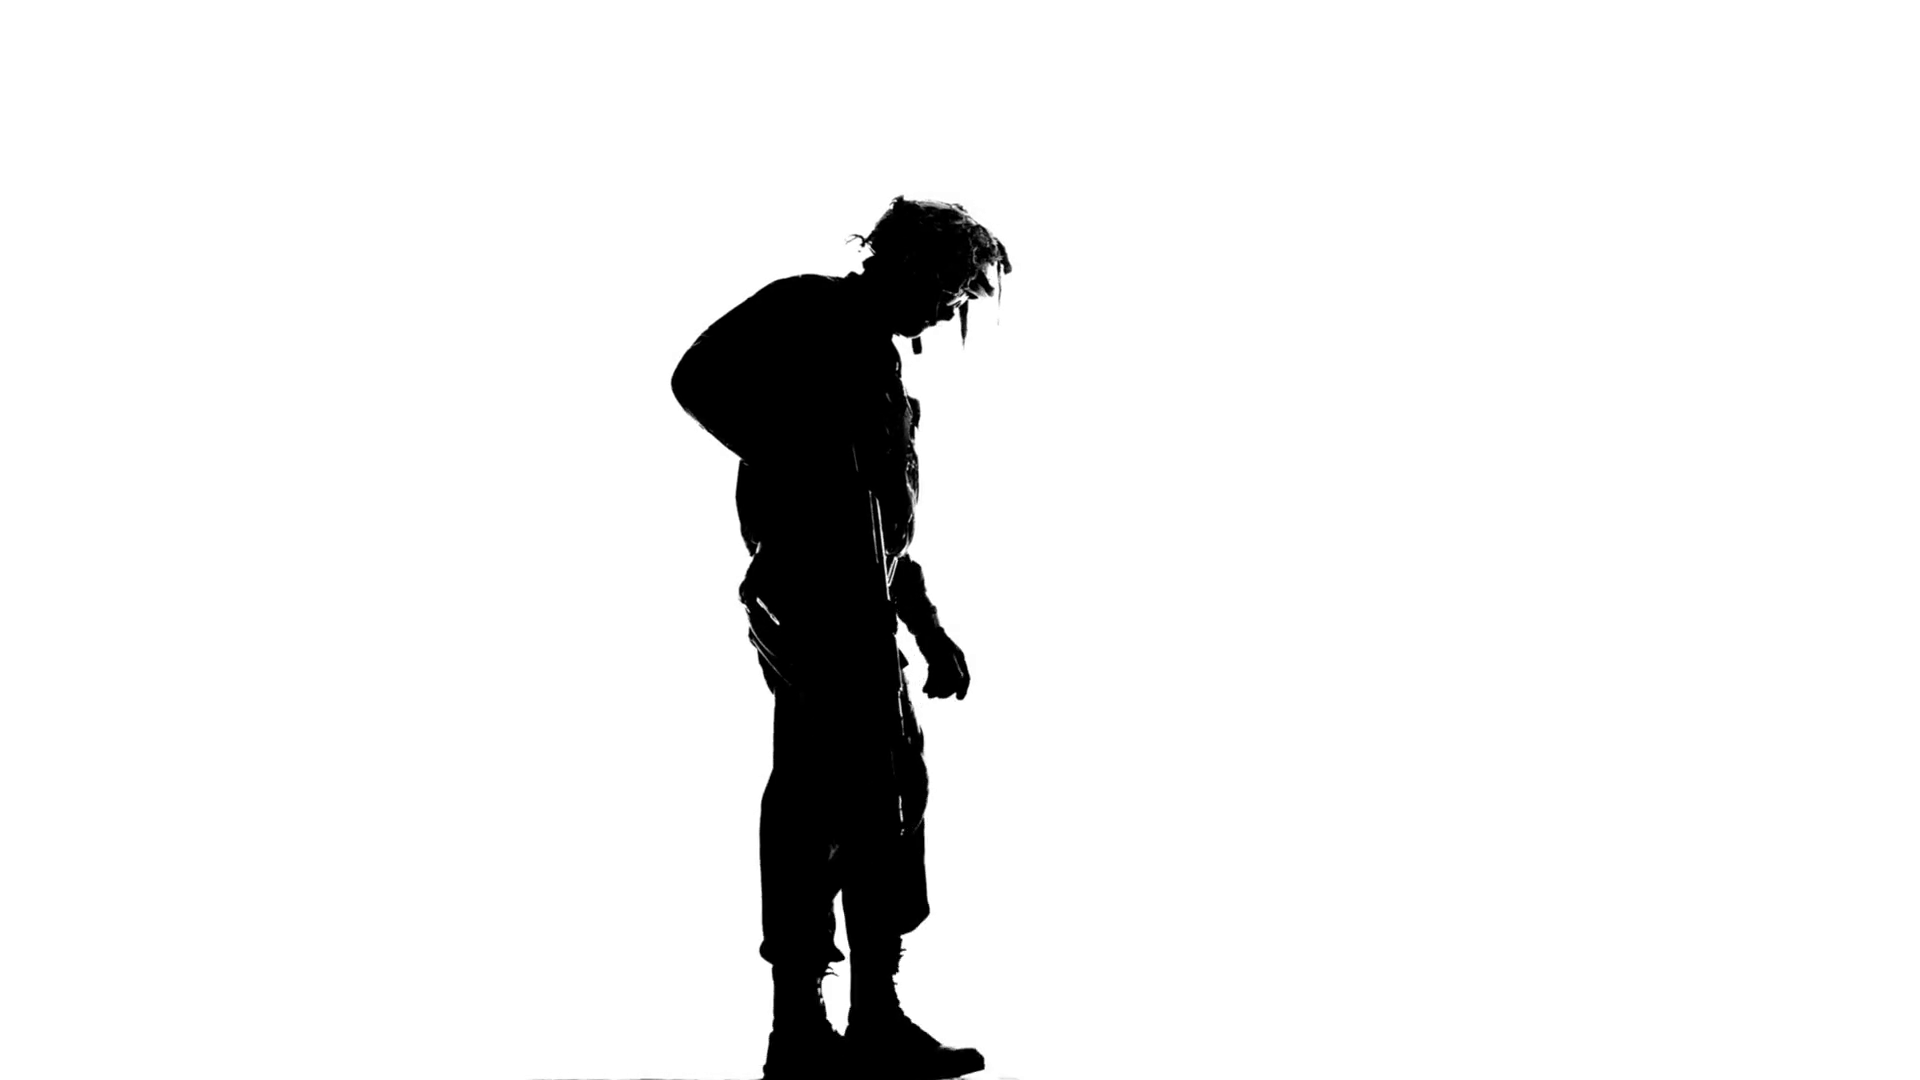 Military Silhouette Png at GetDrawings.com   Free for personal use ...